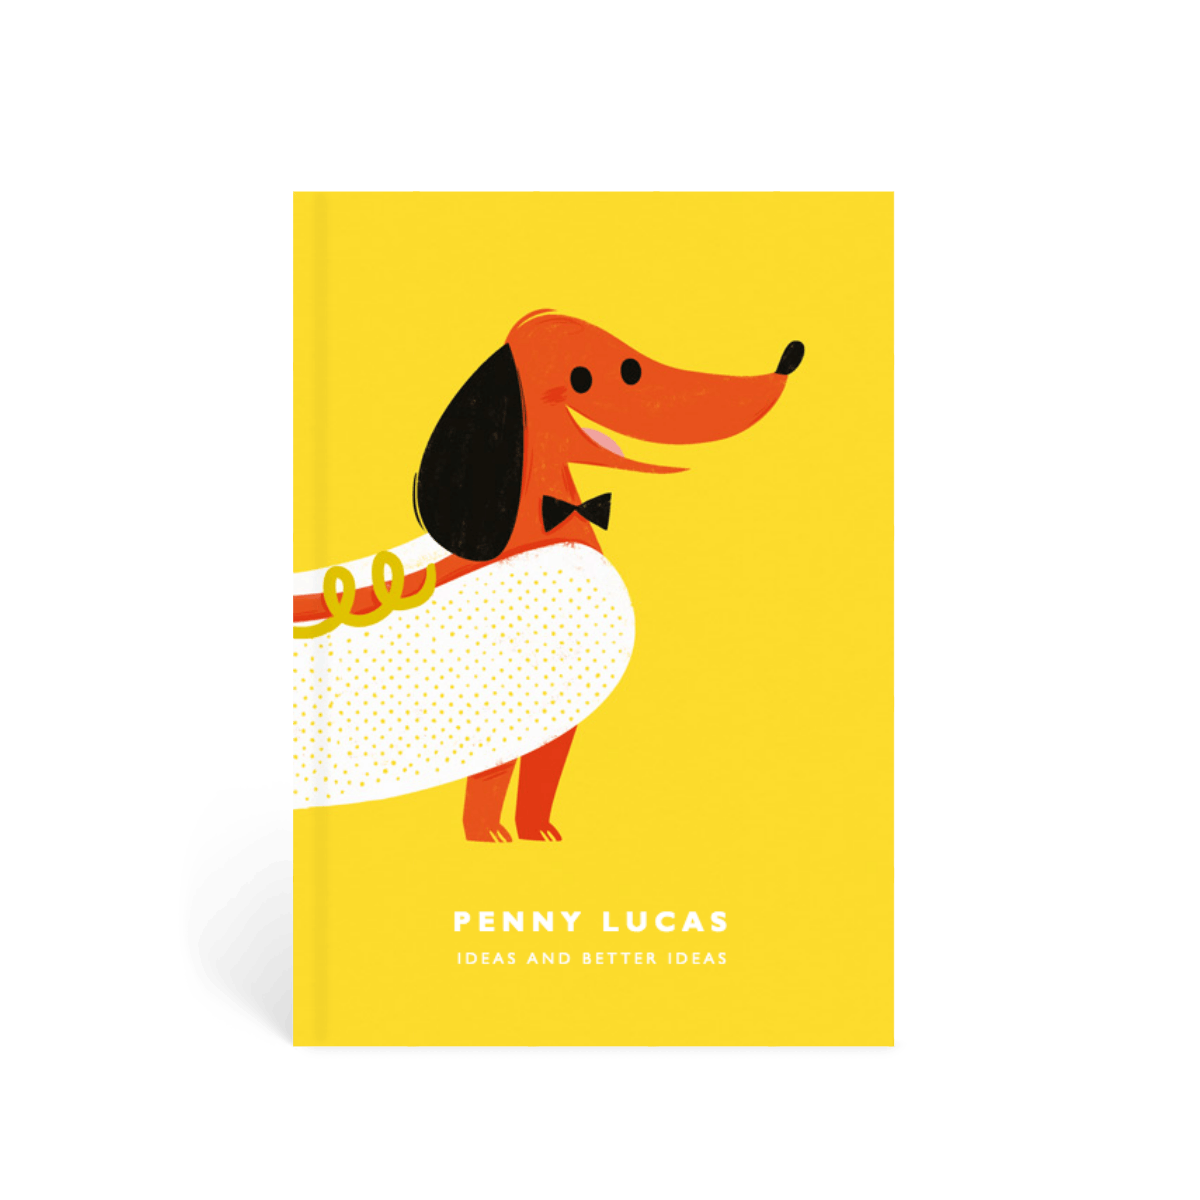 Https%3a%2f%2fwww.papier.com%2fproduct image%2f54639%2f25%2fhappy hot dog 13135 front 1542298734.png?ixlib=rb 1.1